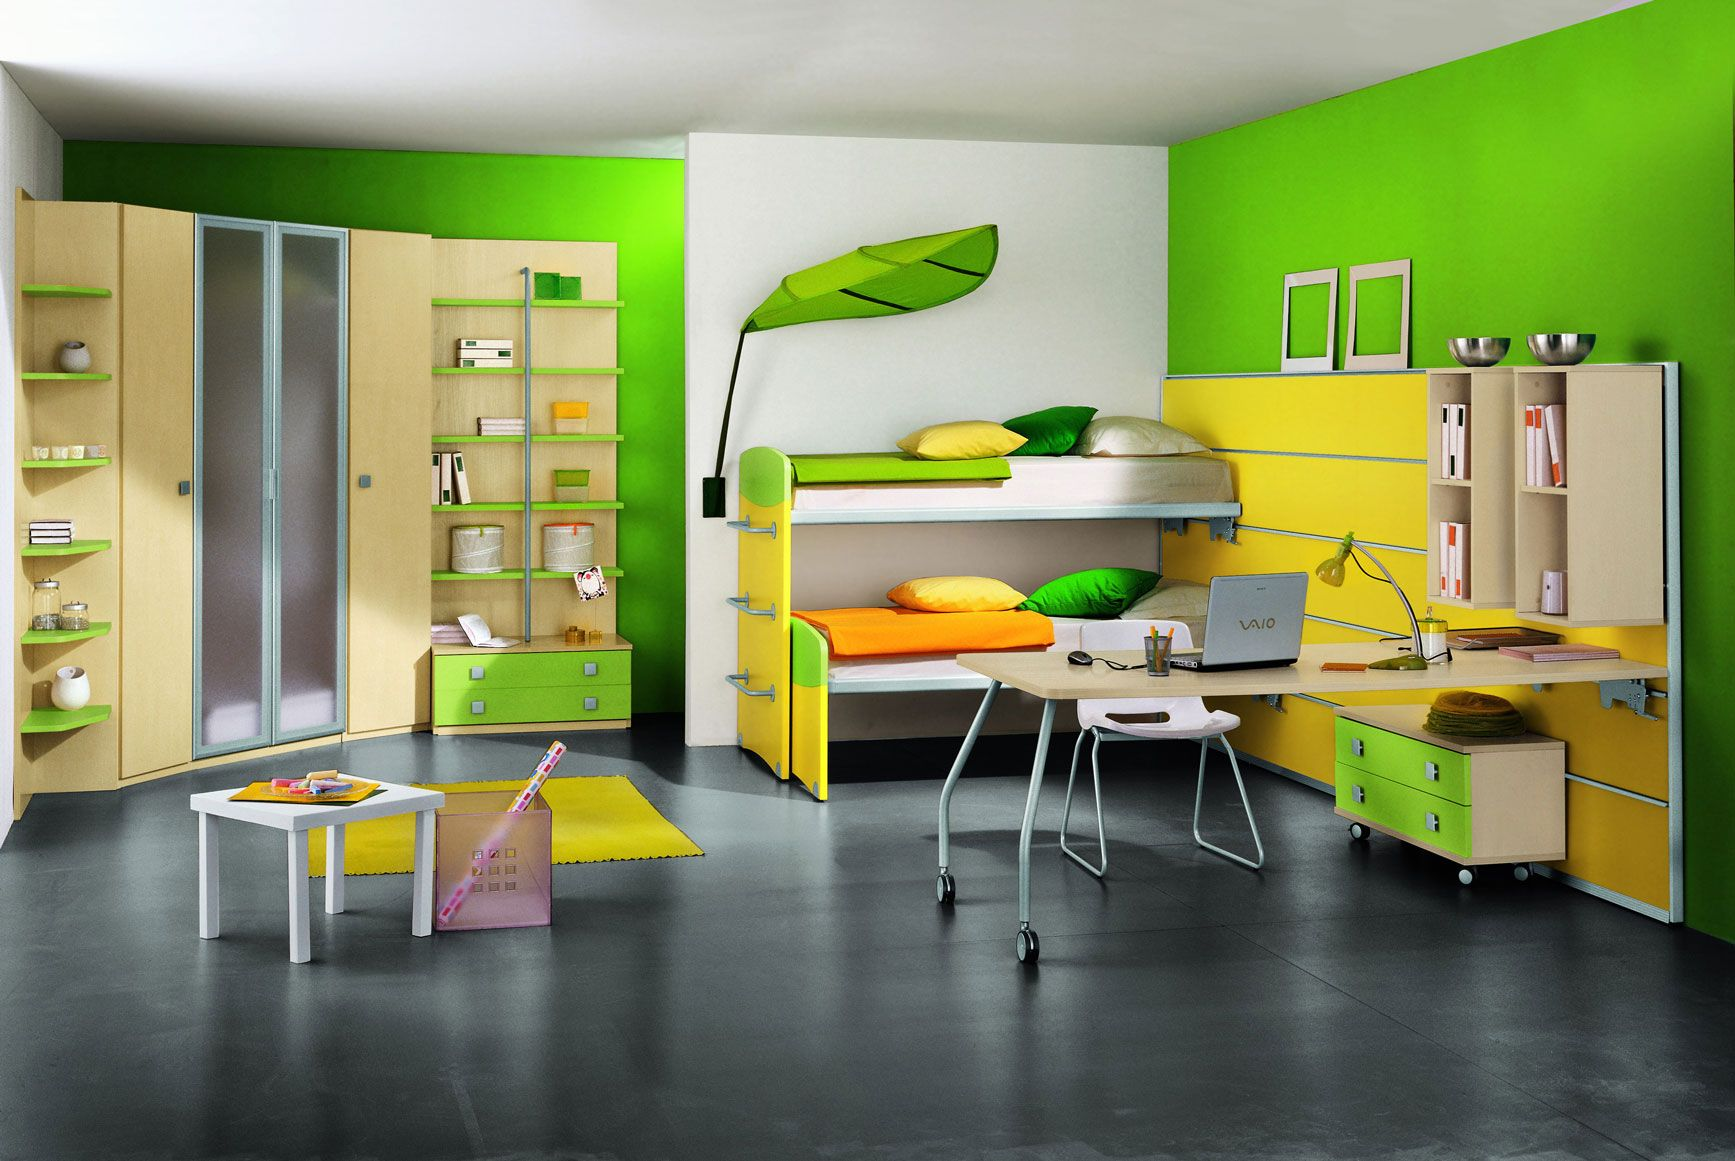 Stylish White and Bright Green Kids Bedroom Design for Shared ...